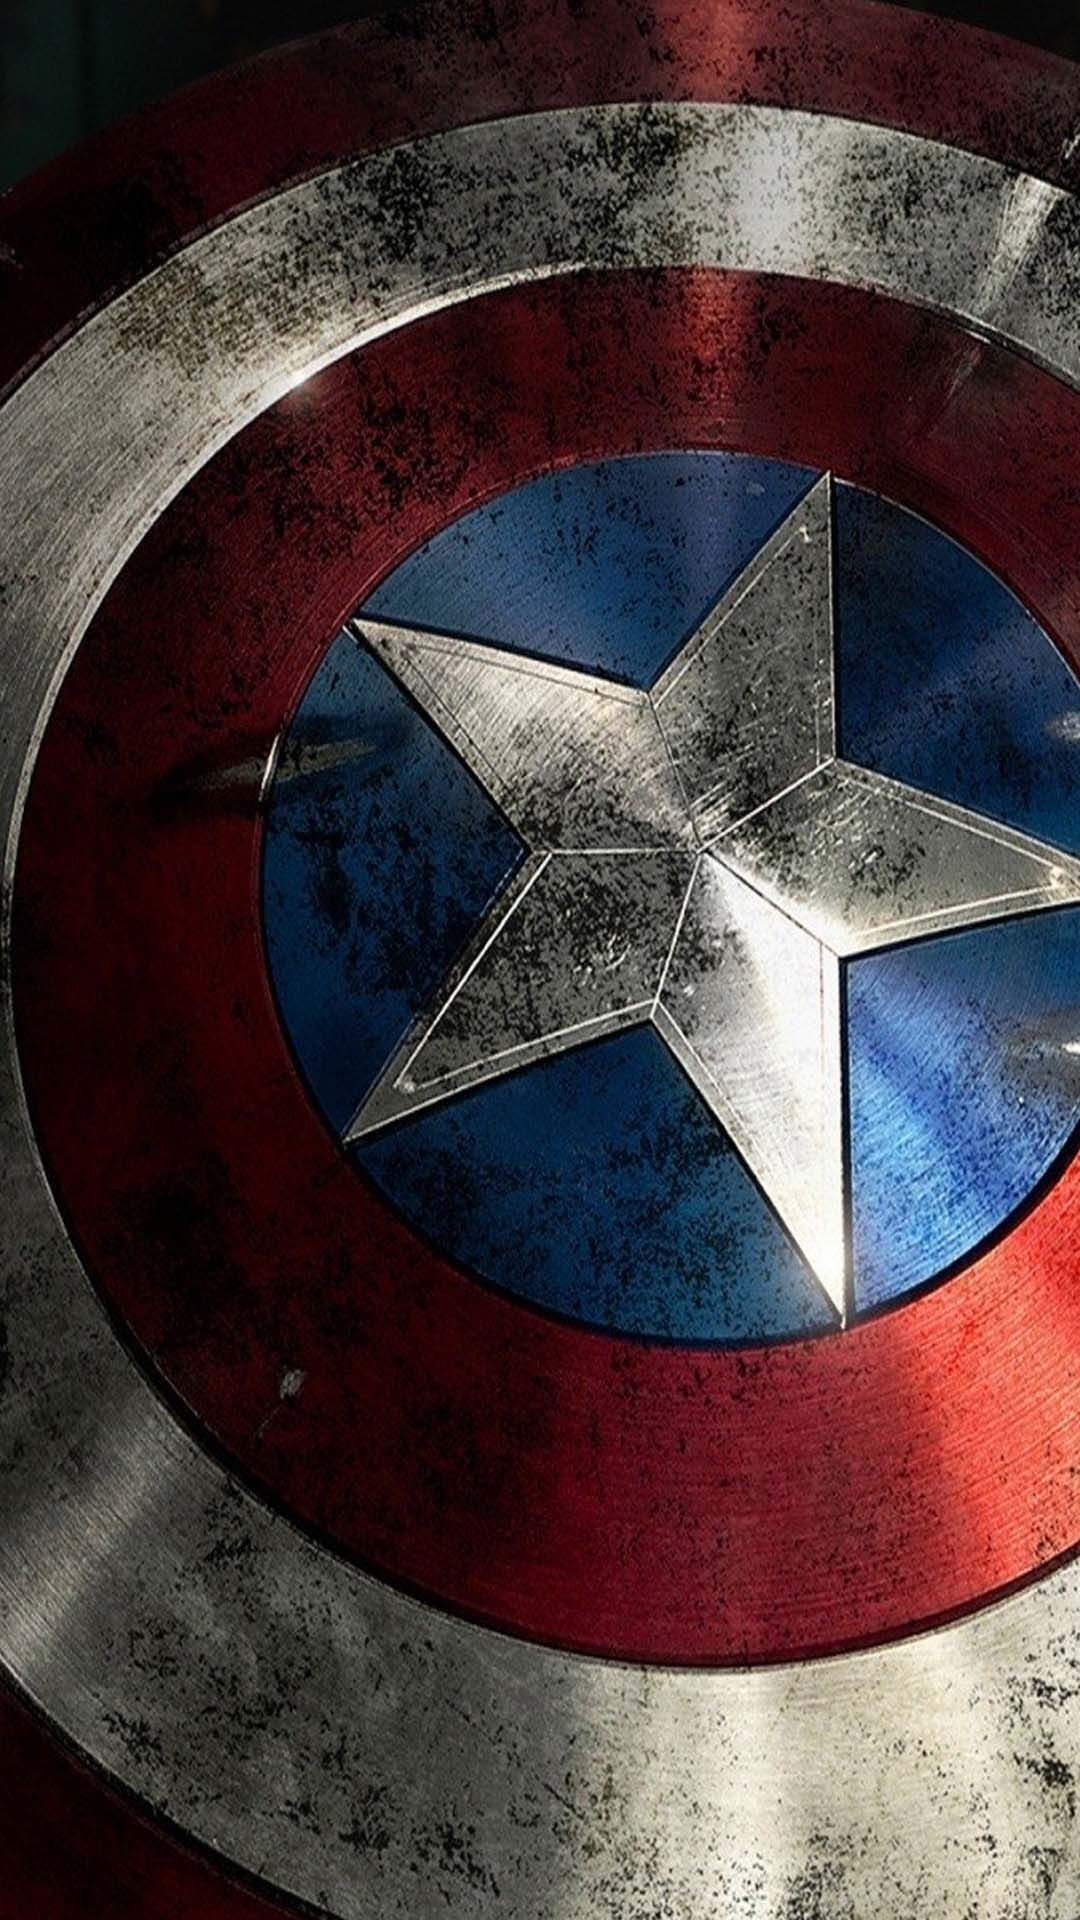 New Iphone Wallpaper Iphone Wallpaper Captain America Shield Wallpaper Captain America Wallpaper Avengers Wallpaper